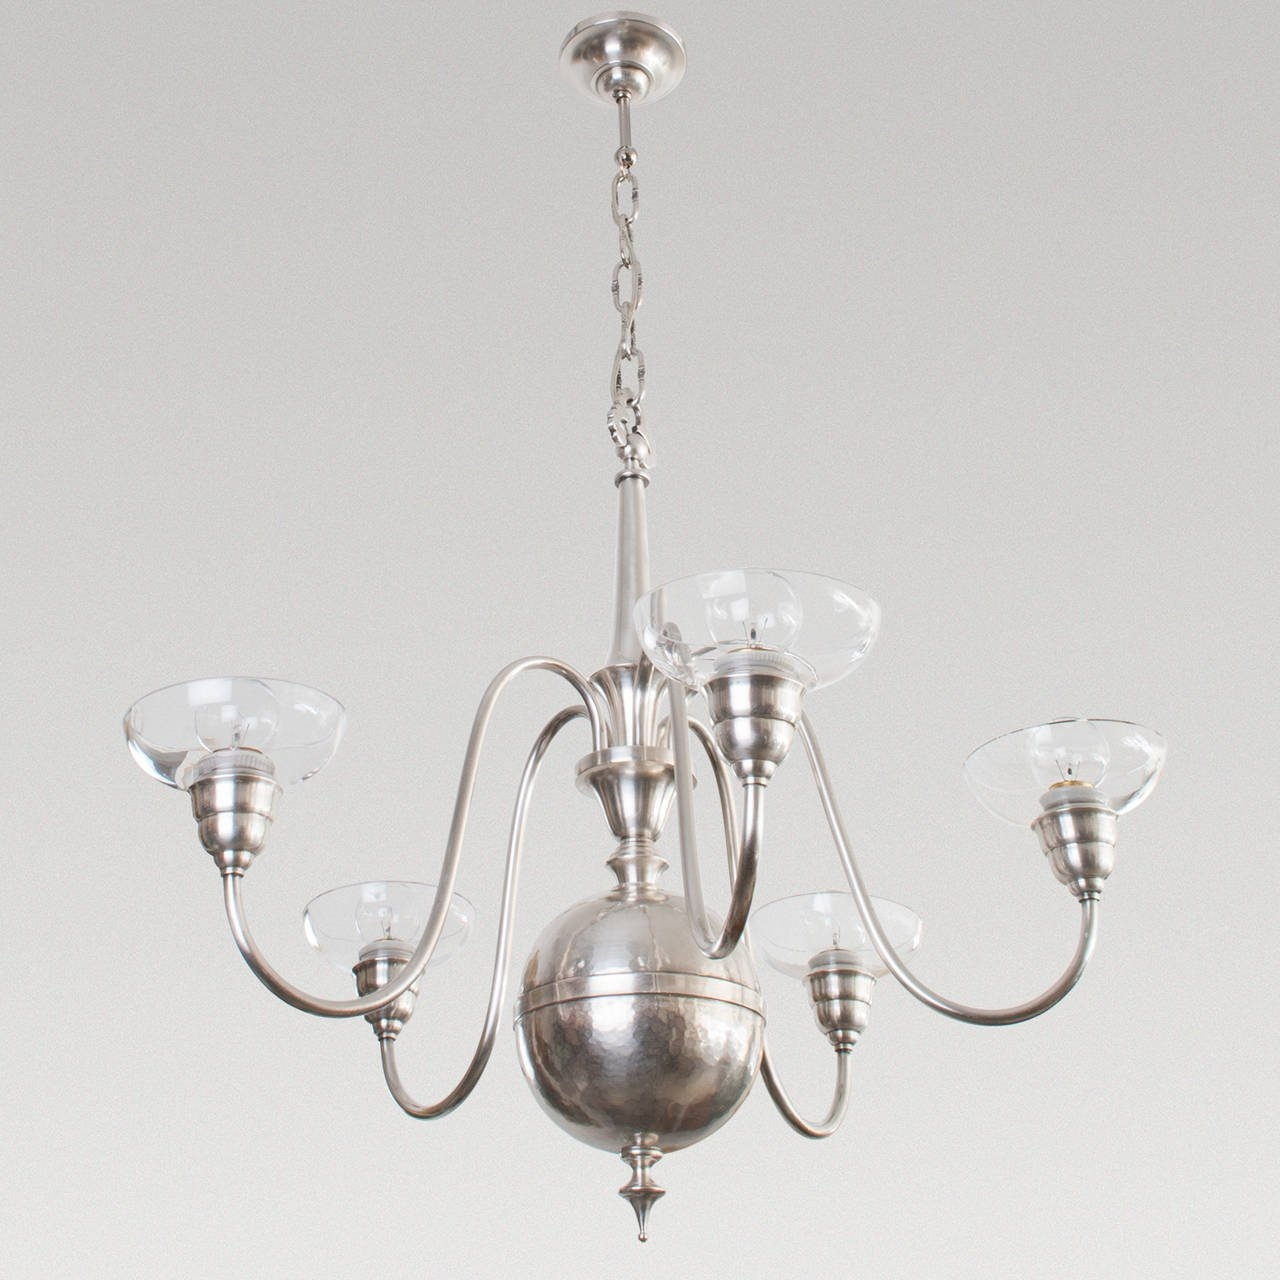 Scandinavian Modern Silver Plated Five Arm Chandelier From Studio Inside Modern Silver Chandelier (Image 13 of 15)